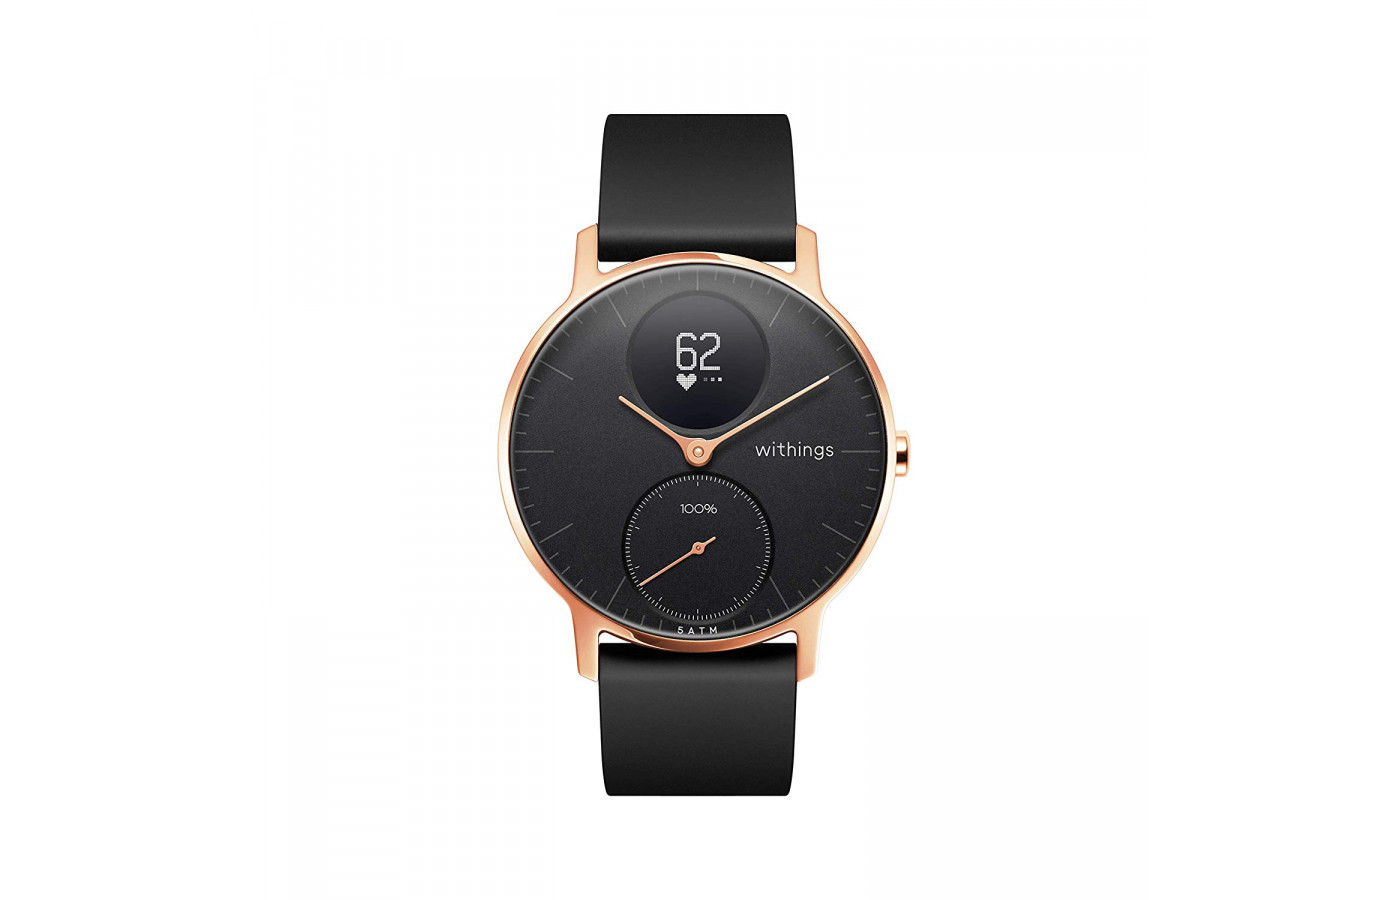 Withings front